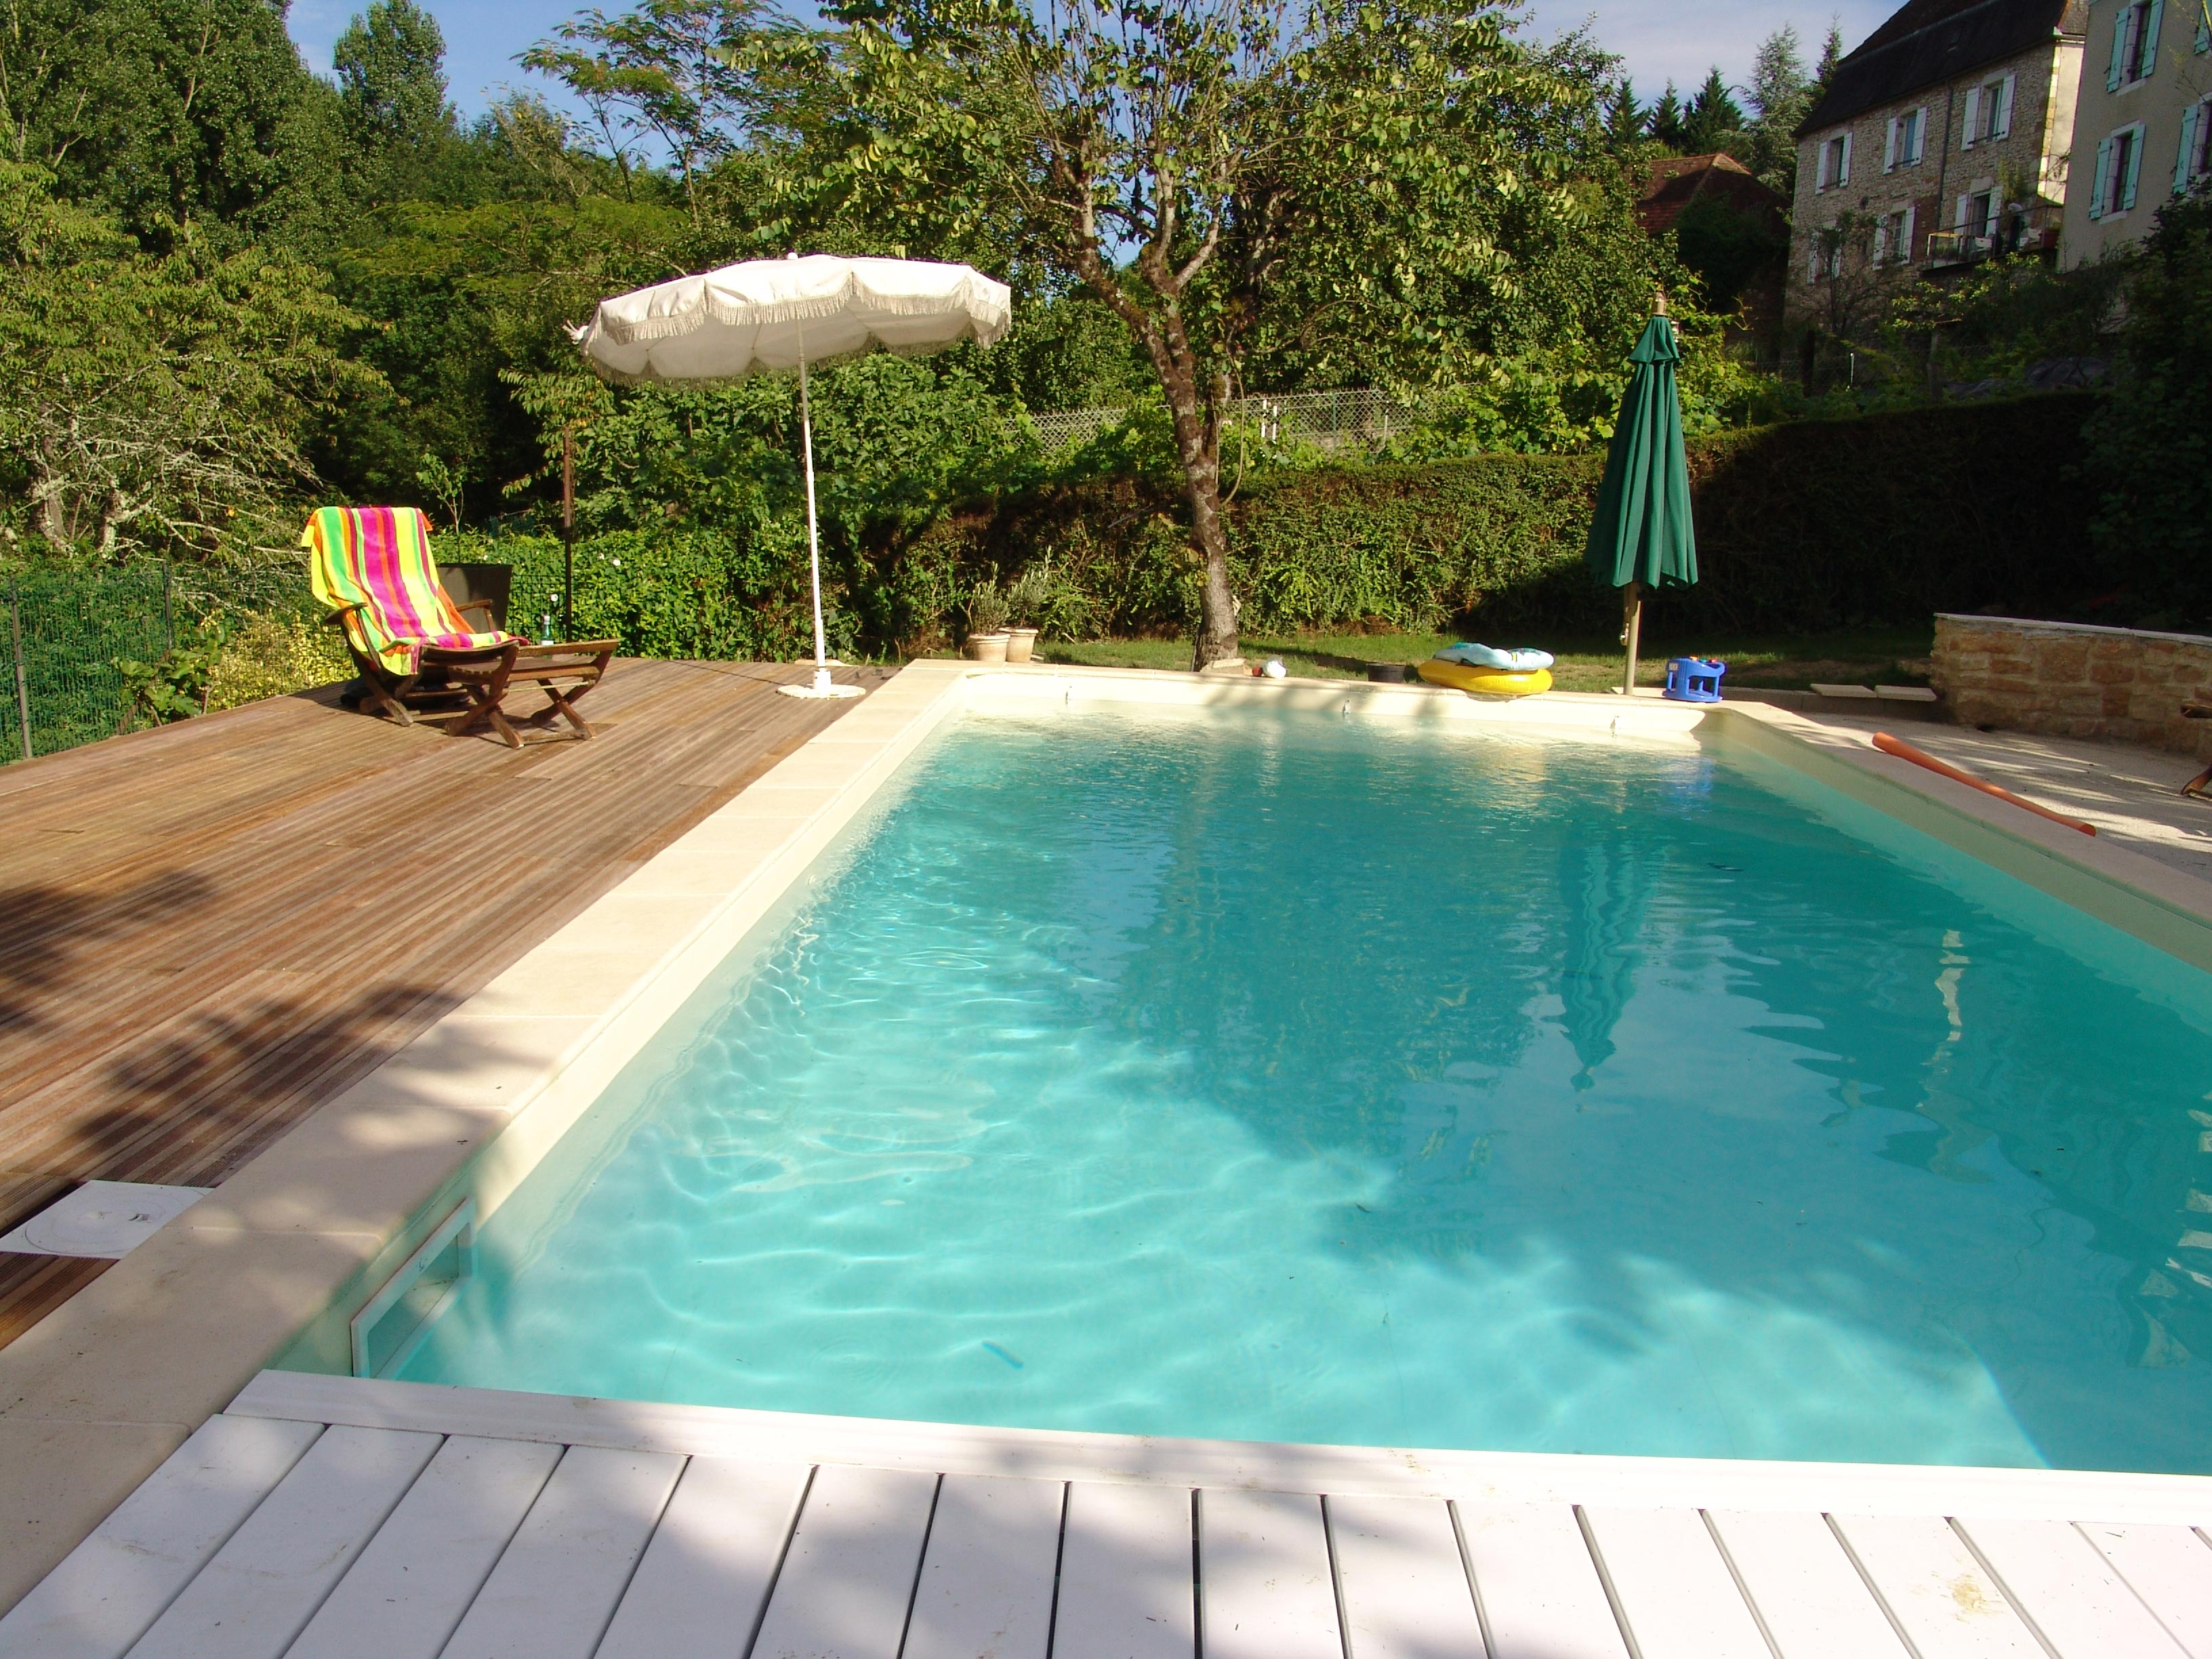 Piscine de jardin images et photos arts et voyages for Piscine de jardin gonflable carrefour